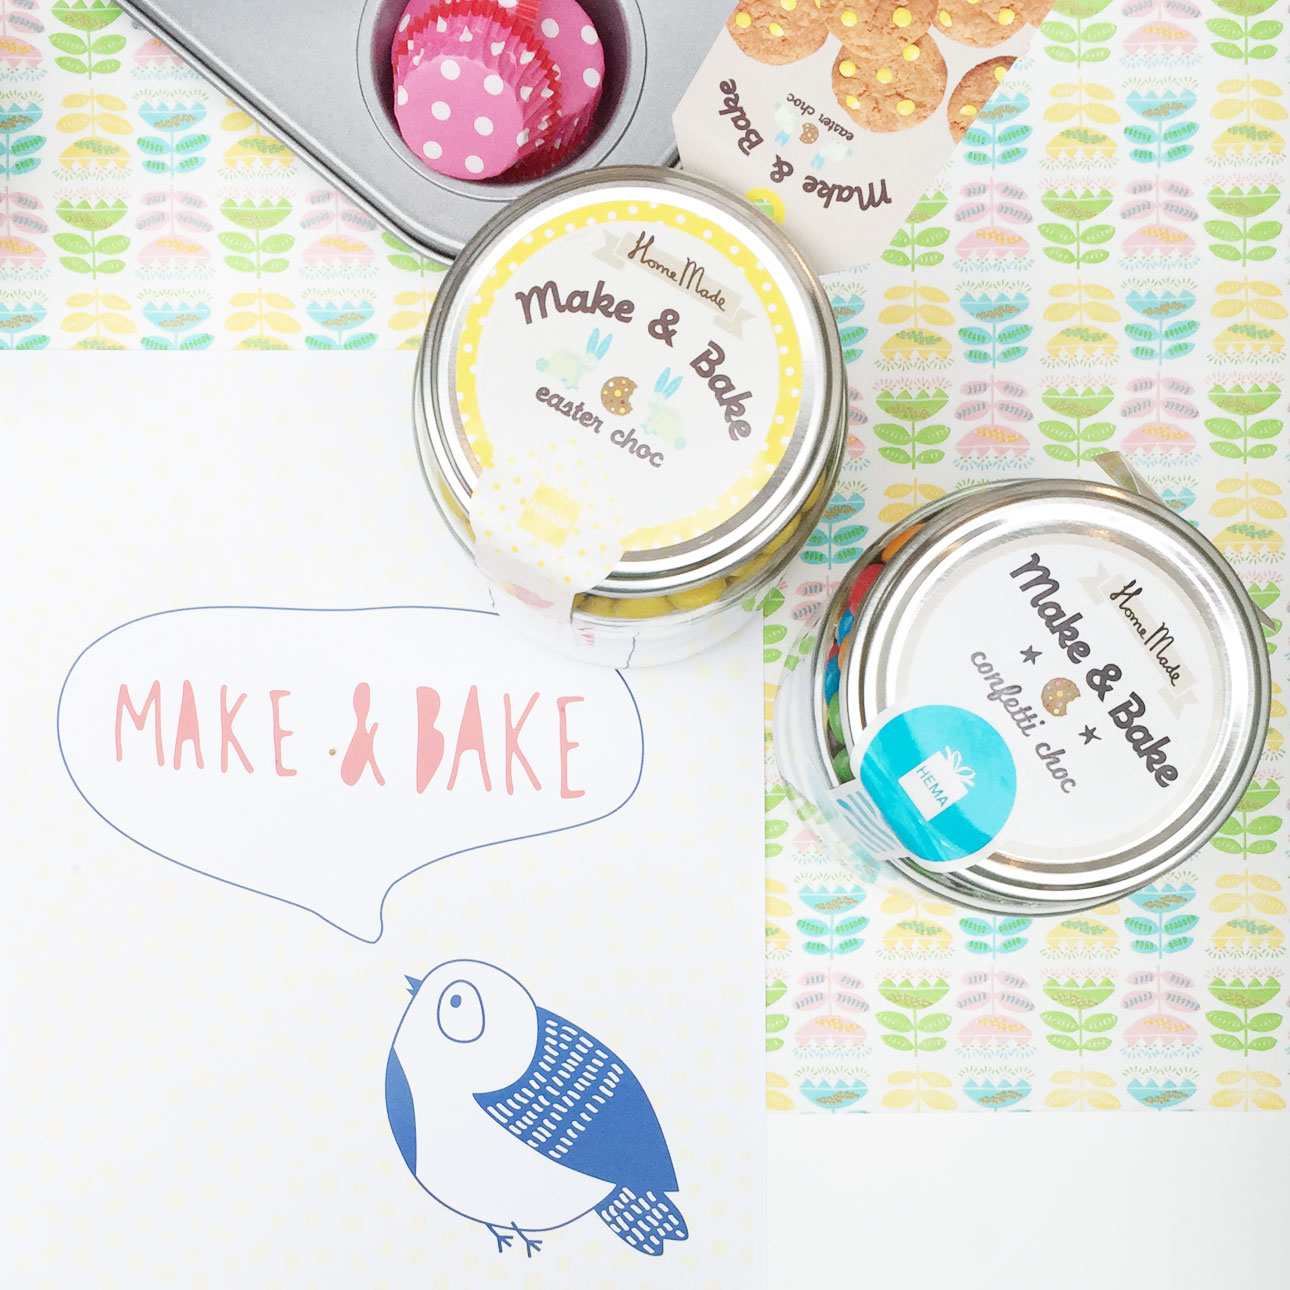 hema persdag make & bake easter